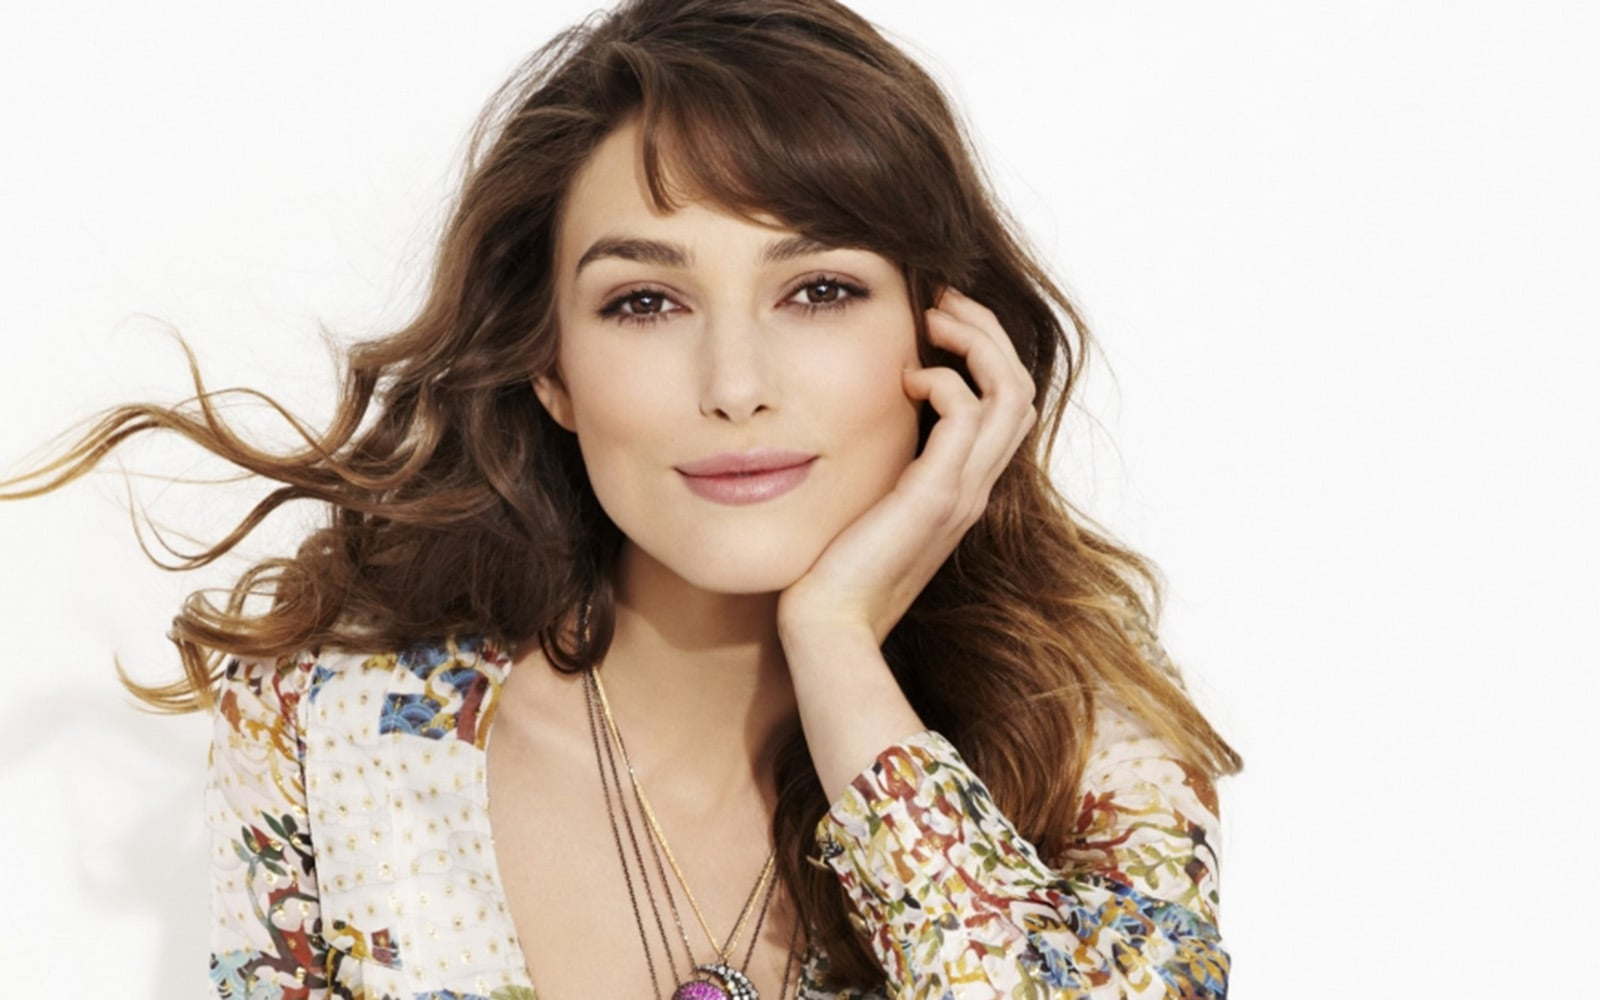 keira knightley wallpaper iphone